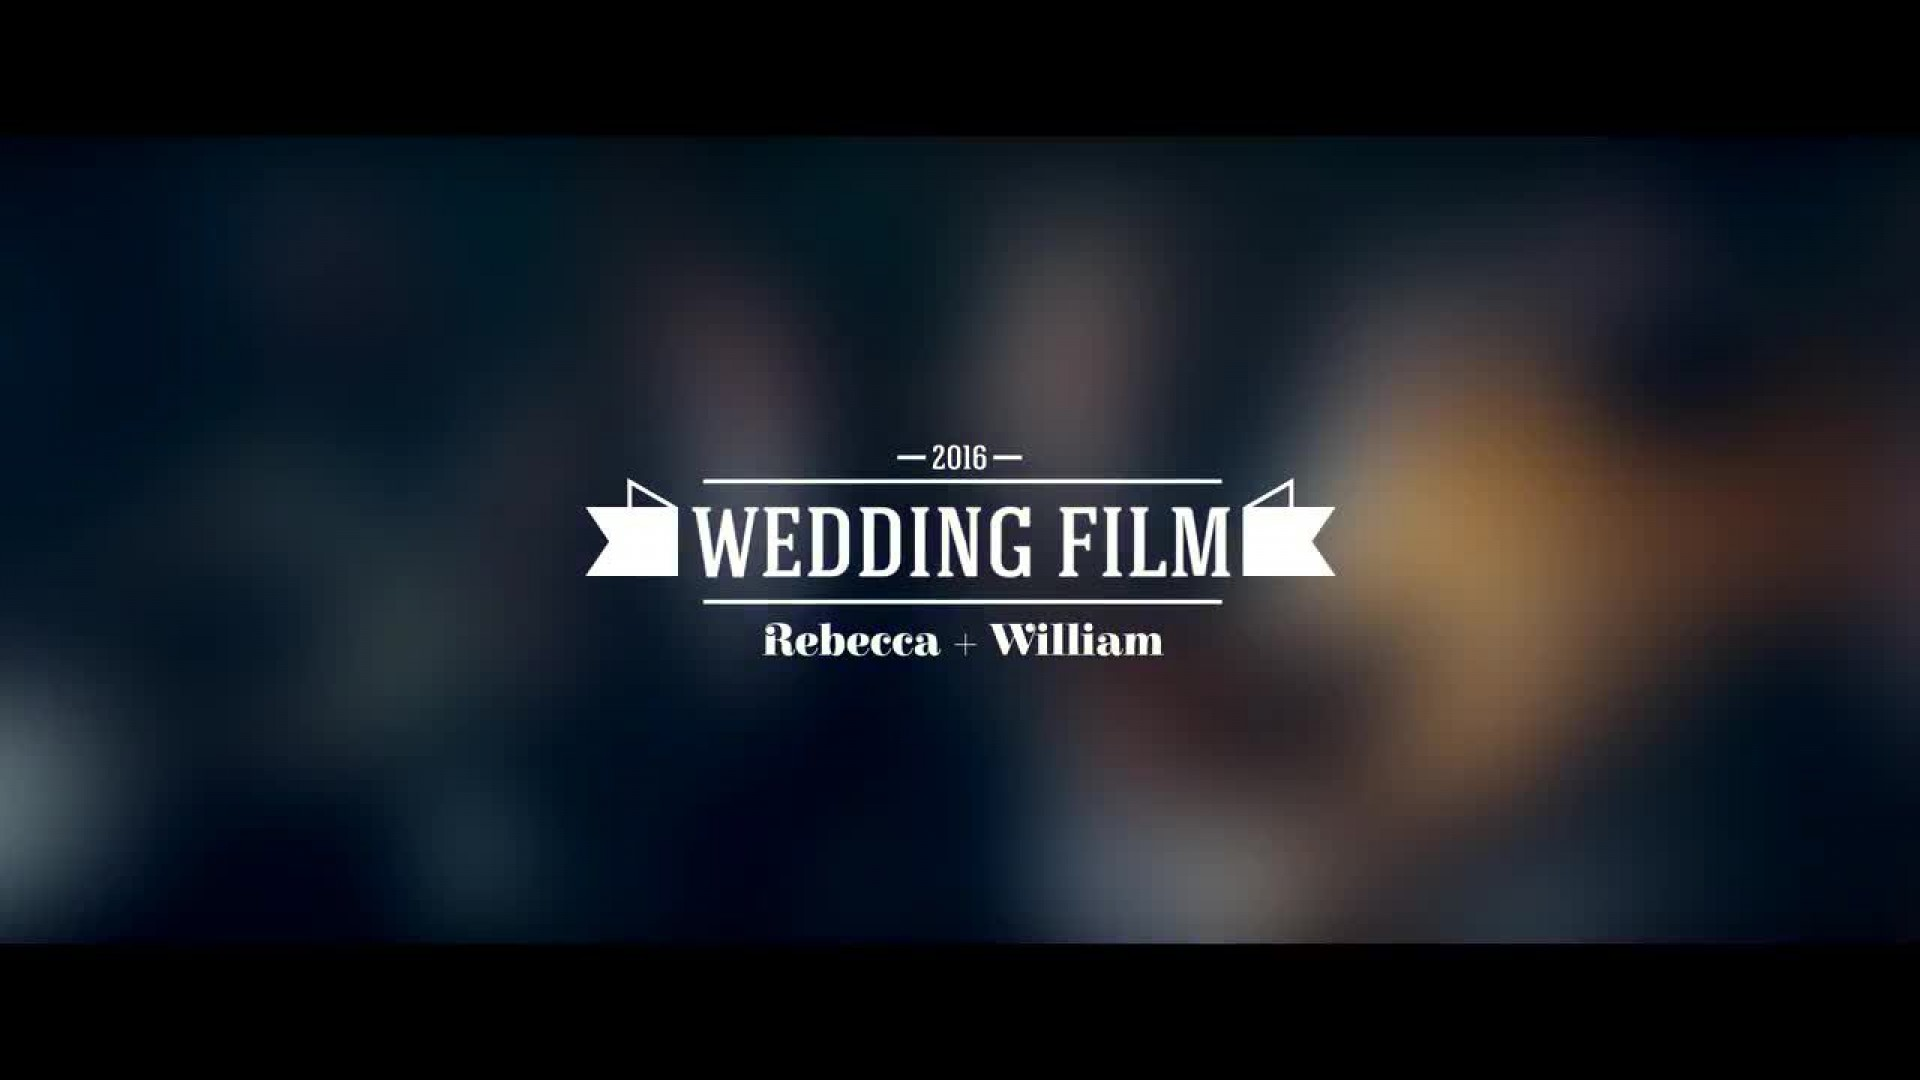 008 Breathtaking After Effect Wedding Template Idea  Templates Free Download Cc Invitation1920